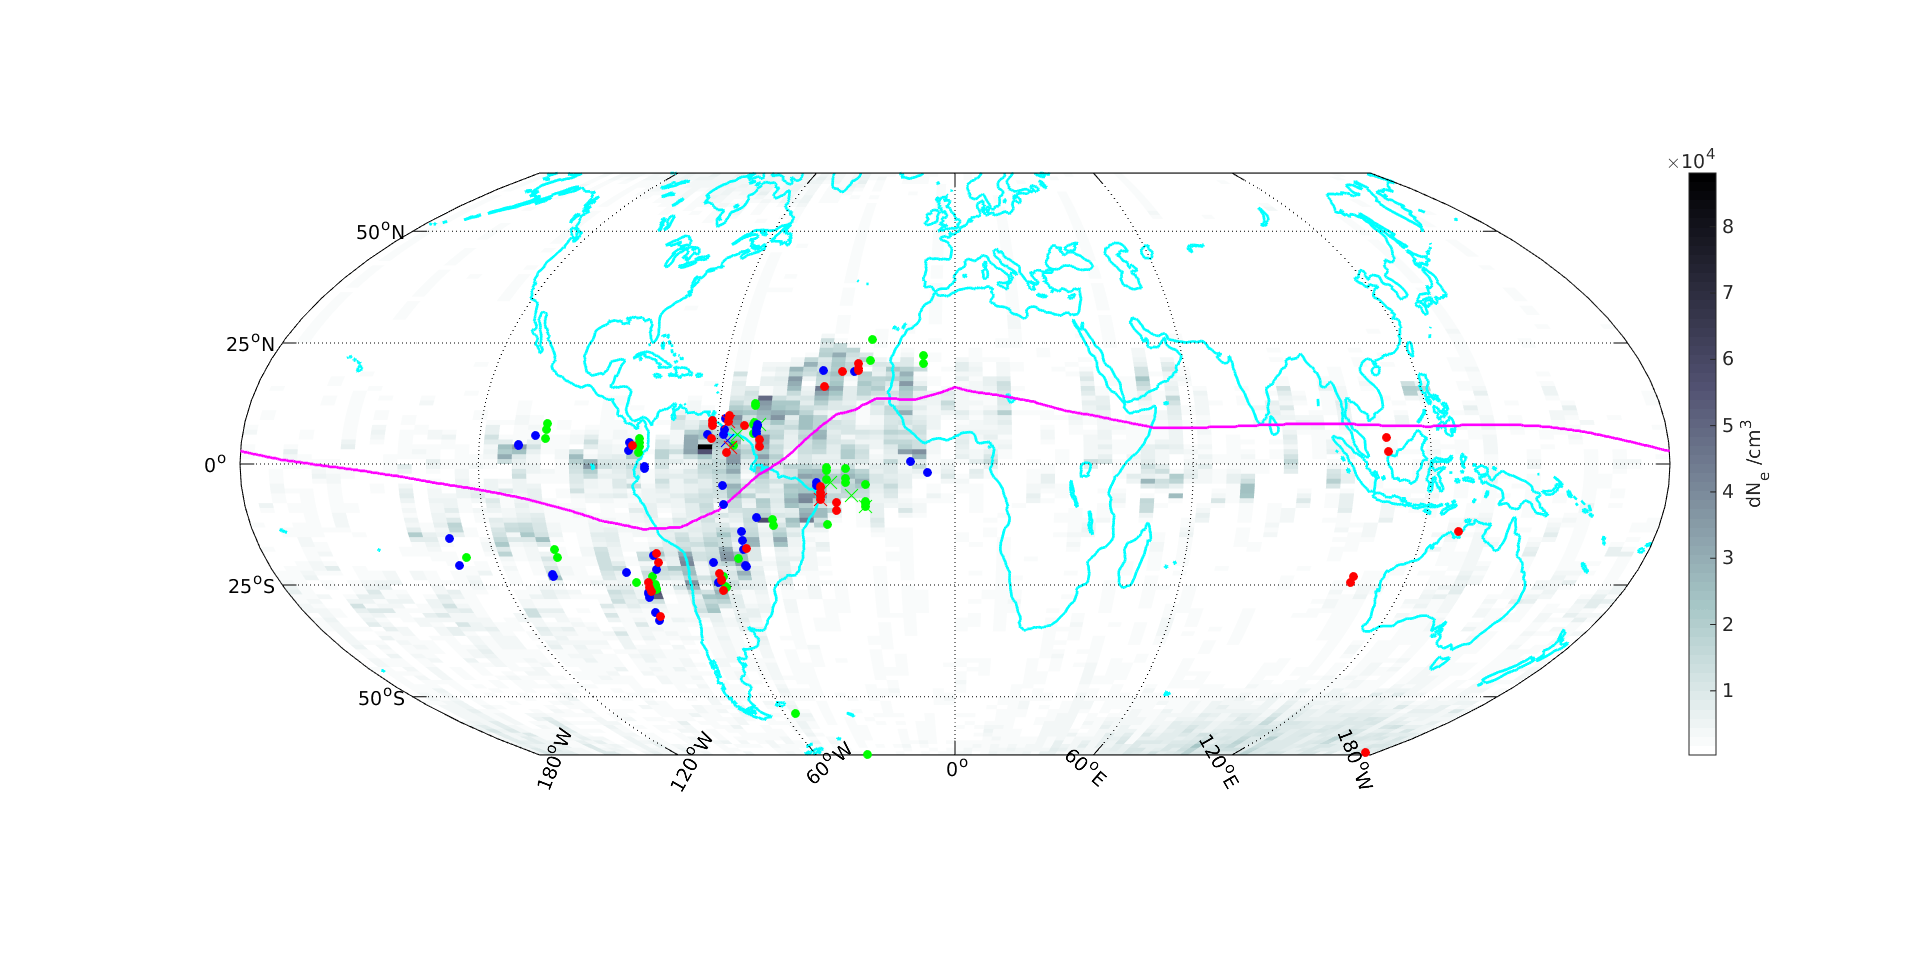 Irregularities in the ionosphere of Earth measured by Swarm.